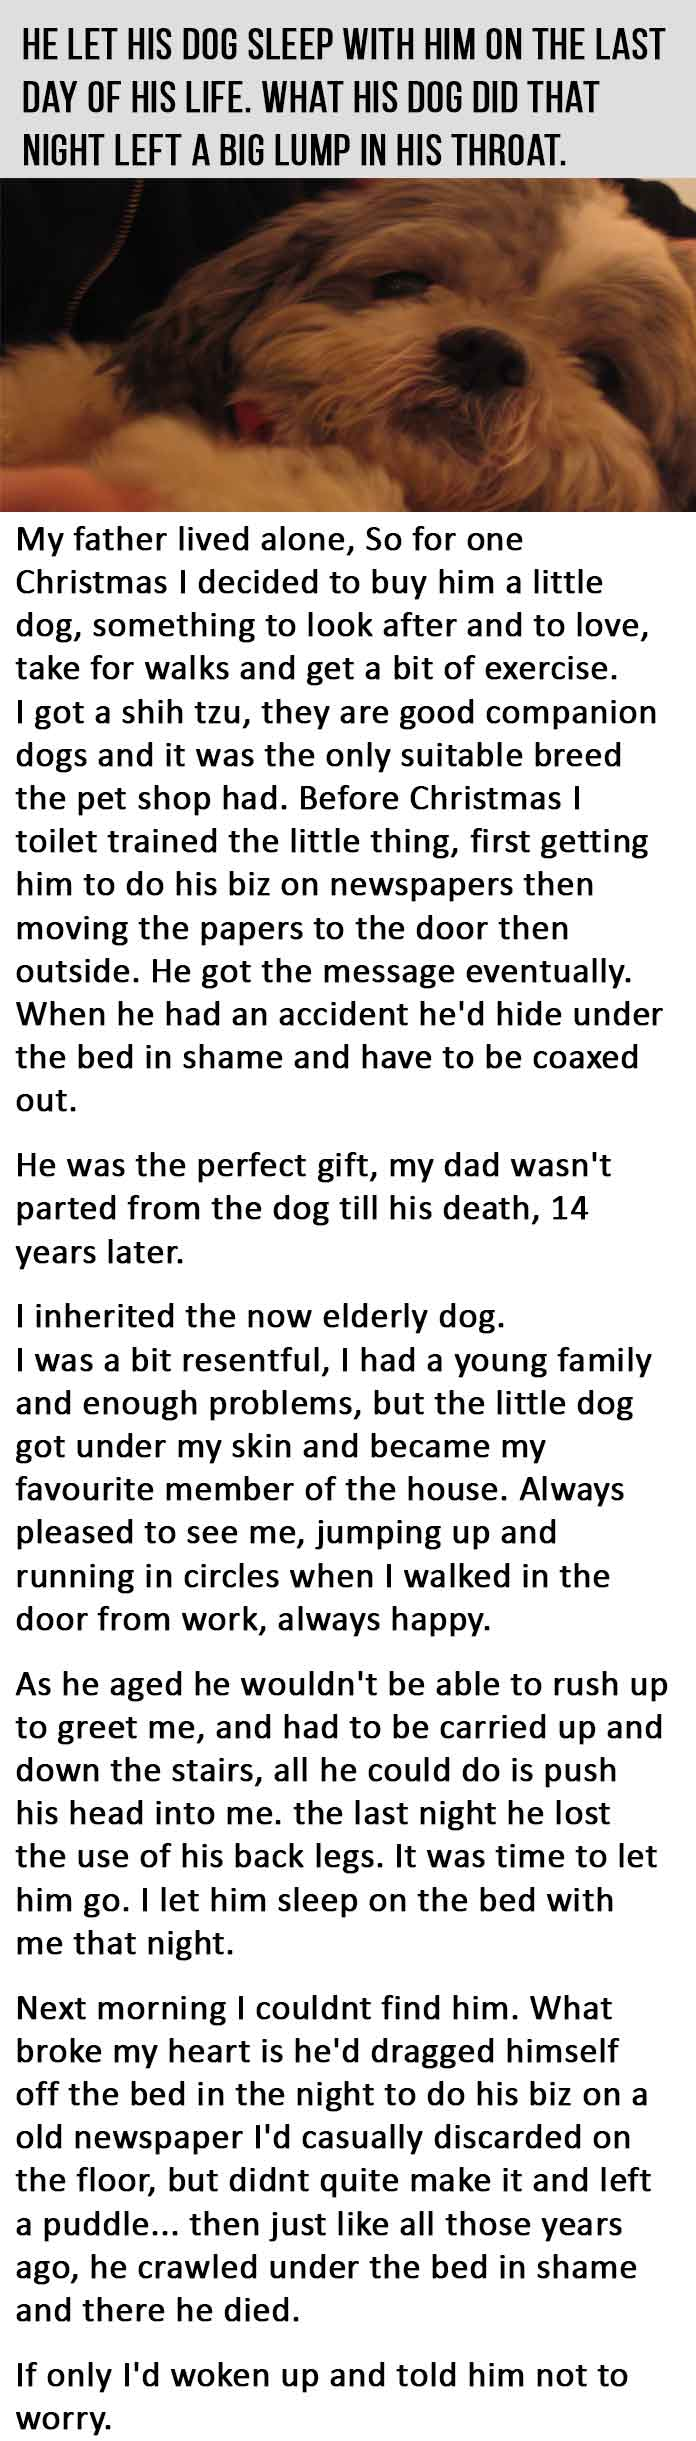 He Let His Dog Sleep With Him On The Last Day Of His Life. This Is Heartbreaking.